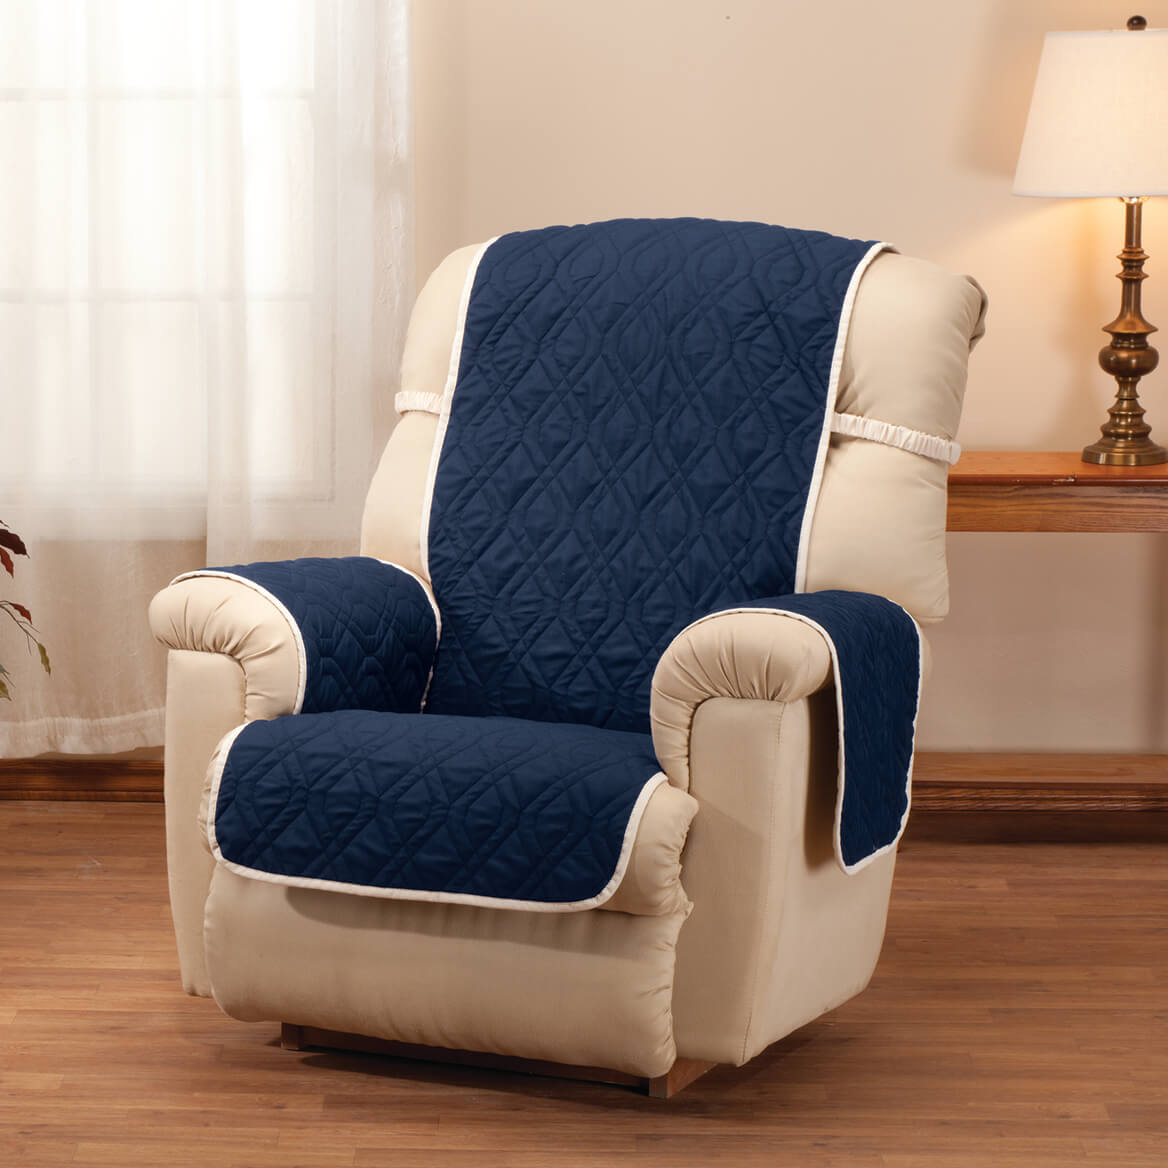 waterproof chair covers for recliners steel manufacturer ludhiana deluxe reversible recliner cover miles